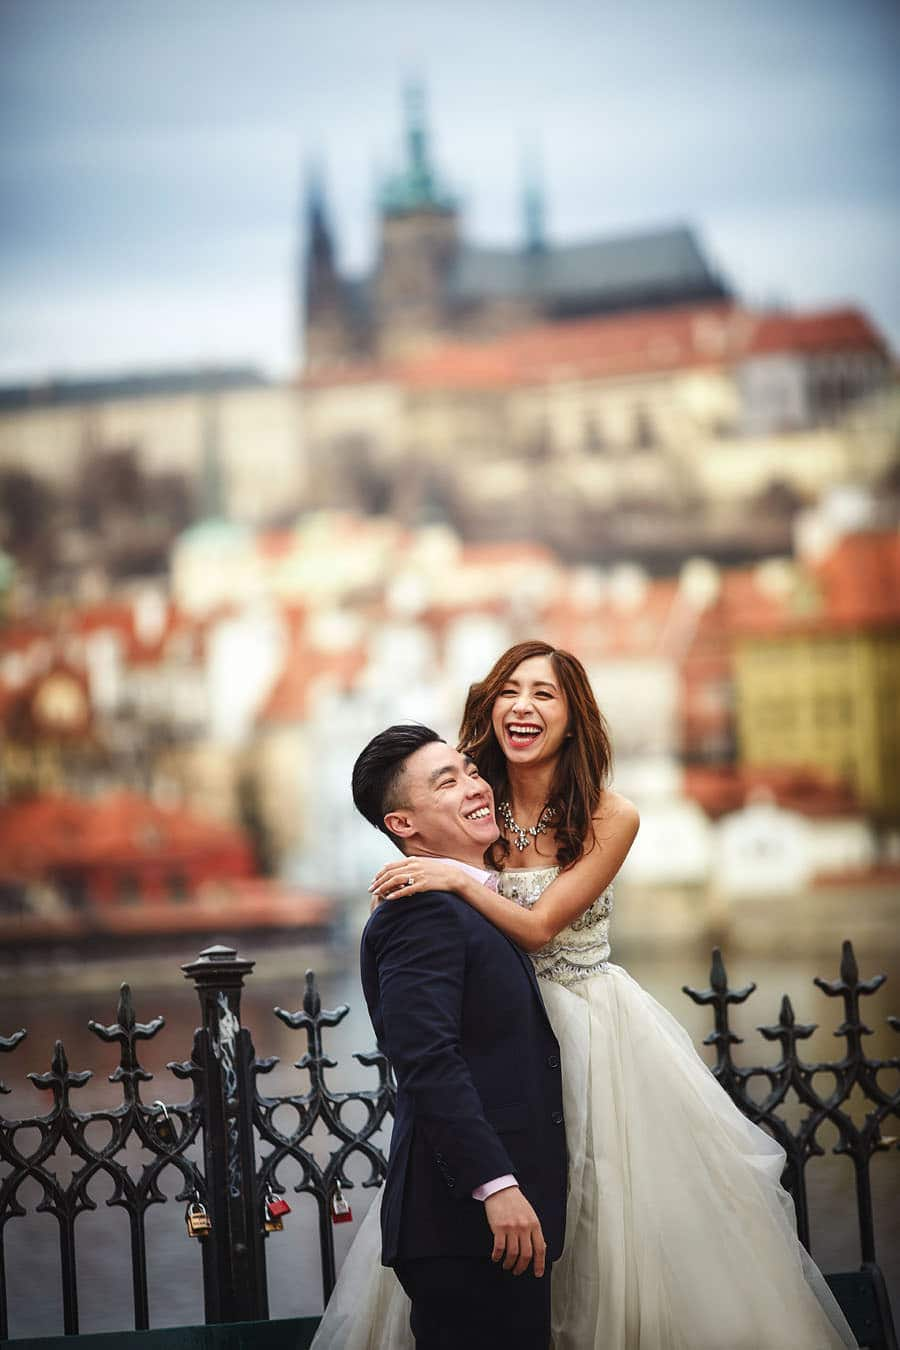 Having a laugh at the Charles Bridge in Prague - a Love Story Engagement photo shoot with Tina & Mike